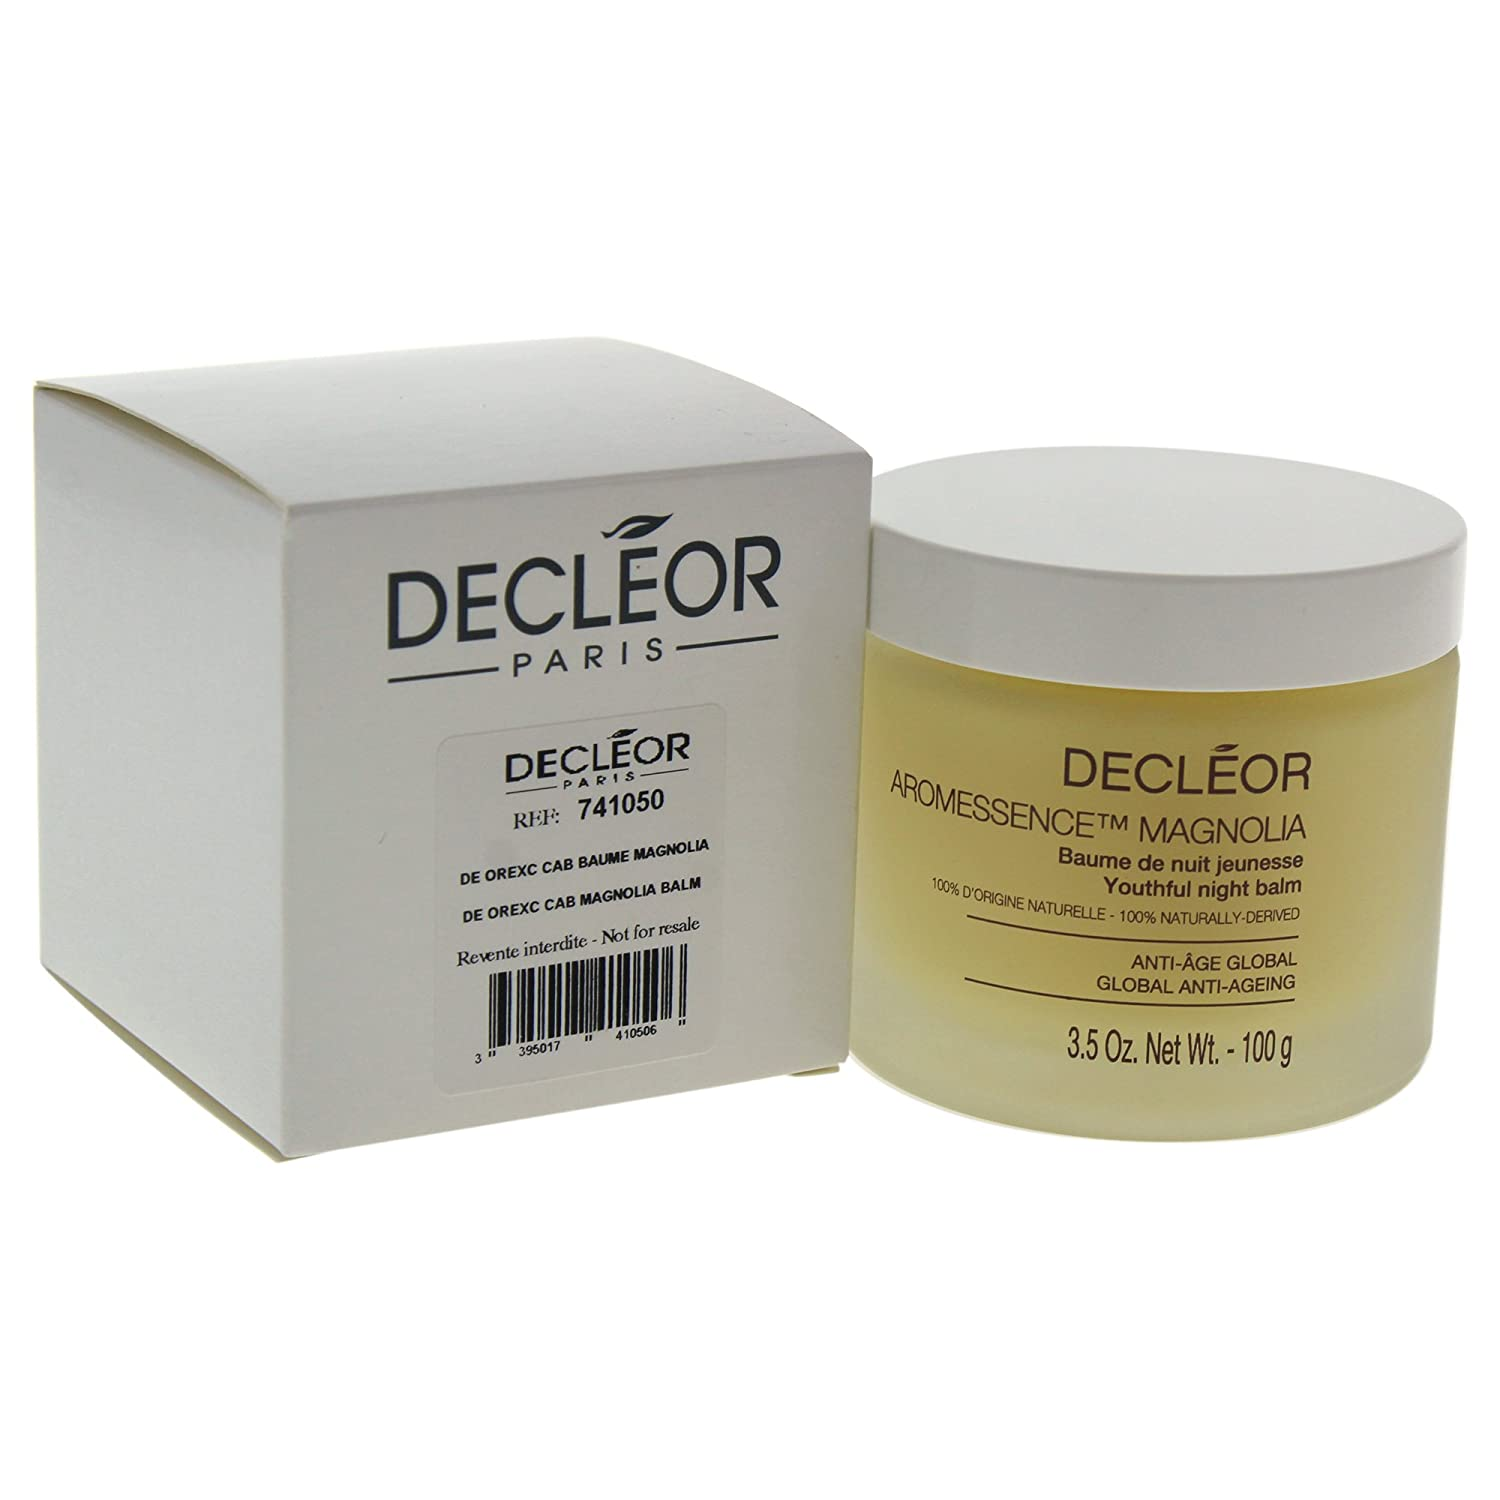 Decleor Aromessence Magnolia Youthful Night Balm, Salon Size, 3.5 Ounce Mainspring America Inc. DBA Direct Cosmetics B01N6QNOQ3